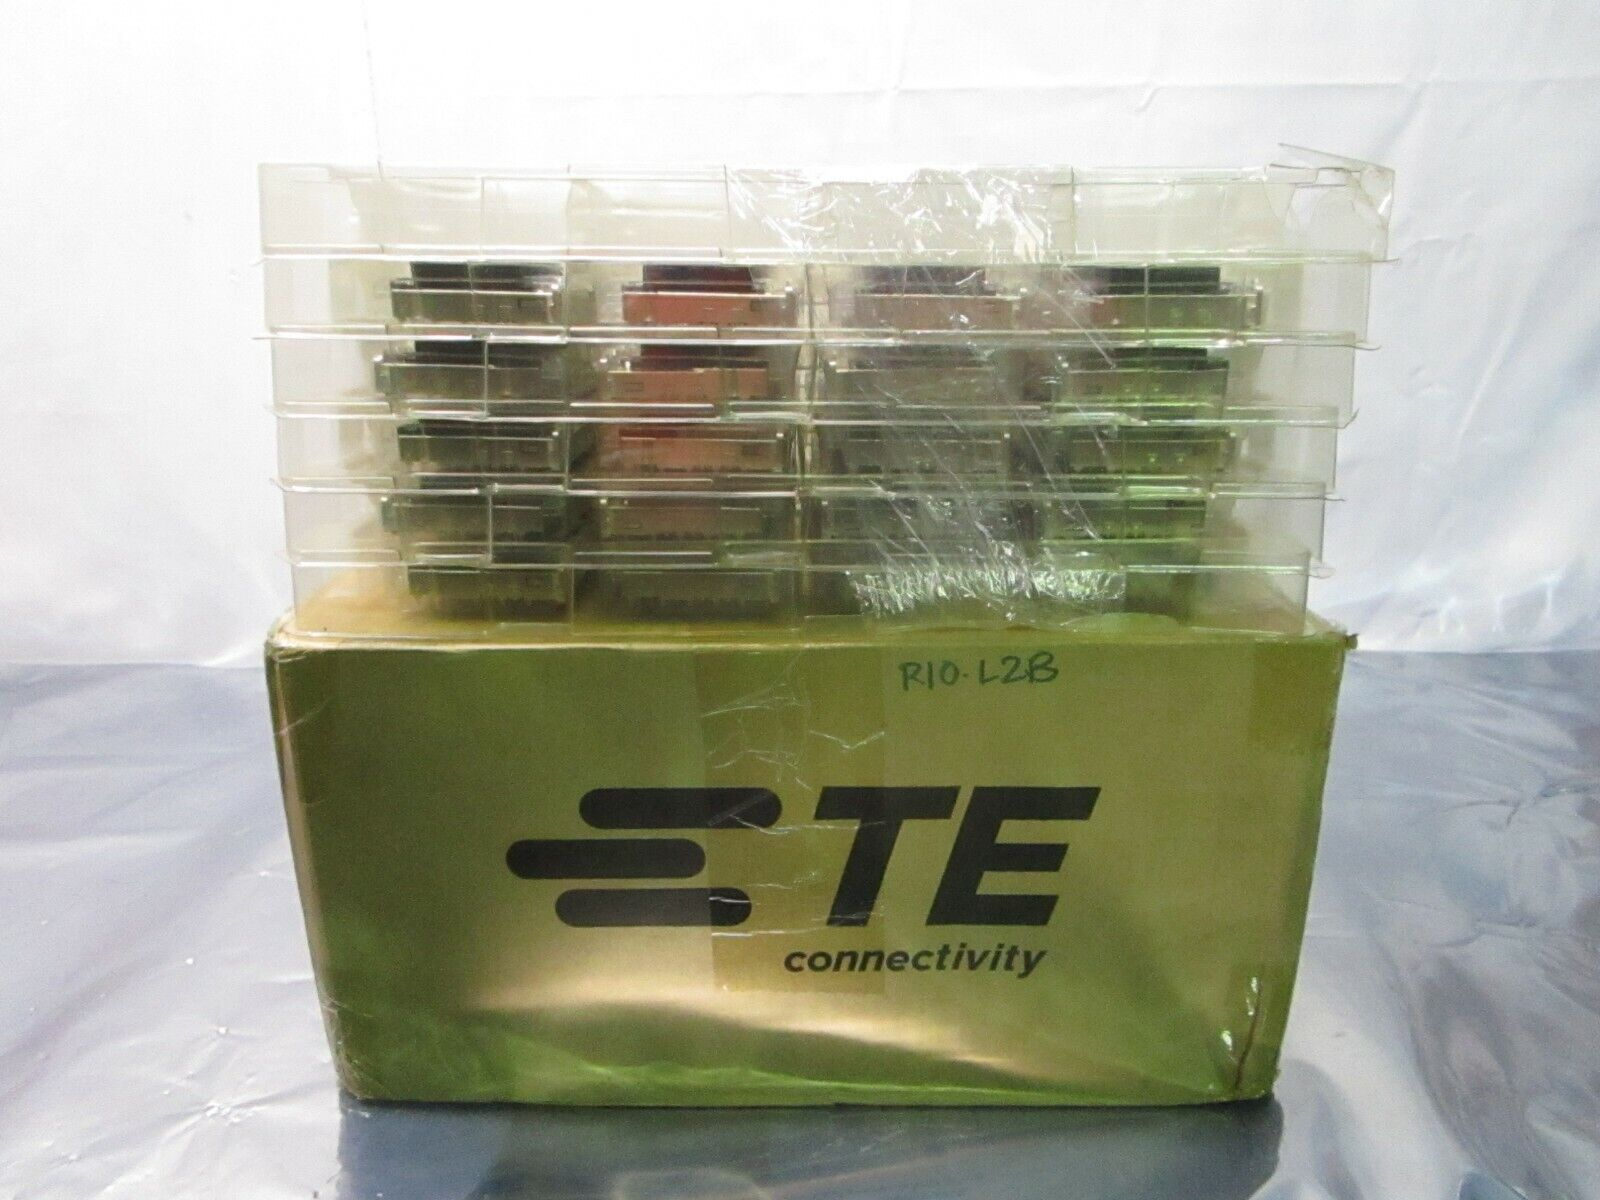 1 Lot of 40 TE connectivity AMP Brand 2170551-1 1X6 CAGE ASSEMBLY, 102306